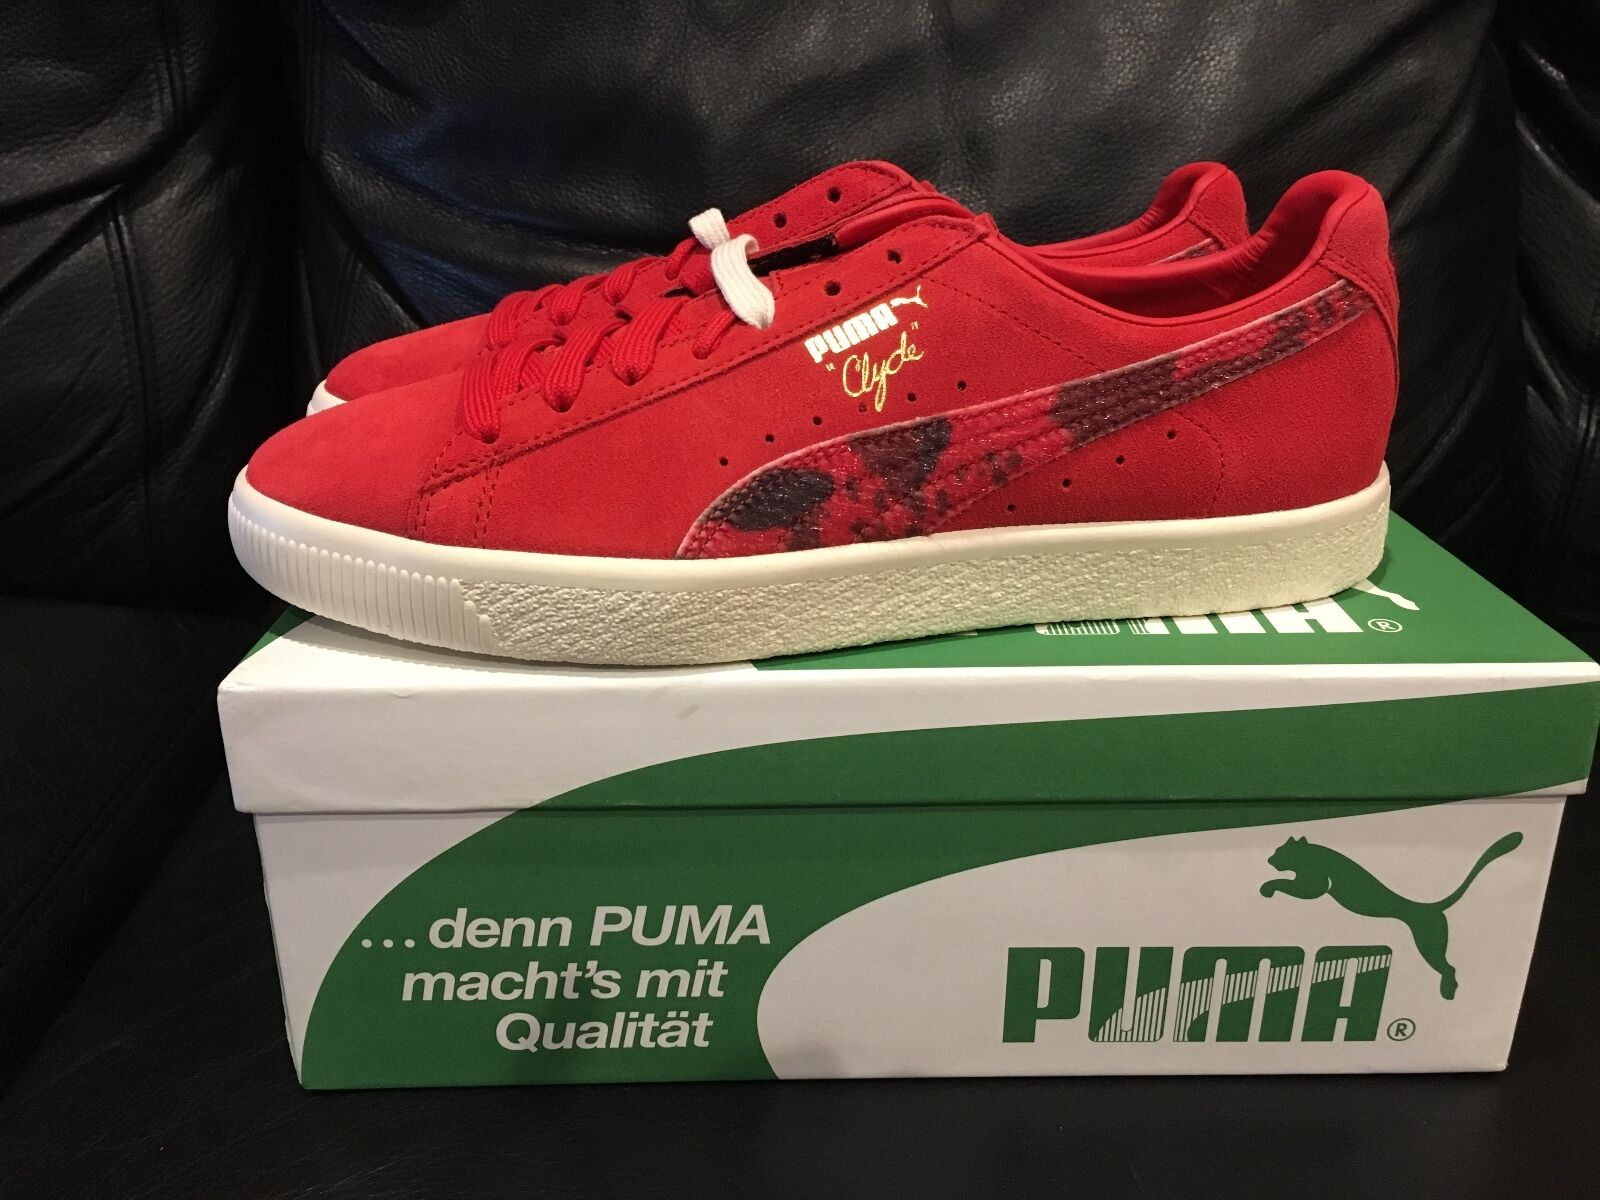 Puma x Packer Shoes High Risk 9 Rojo Cow suit tamaño 9 Risk Hombre cómodo y atractivo c5b602